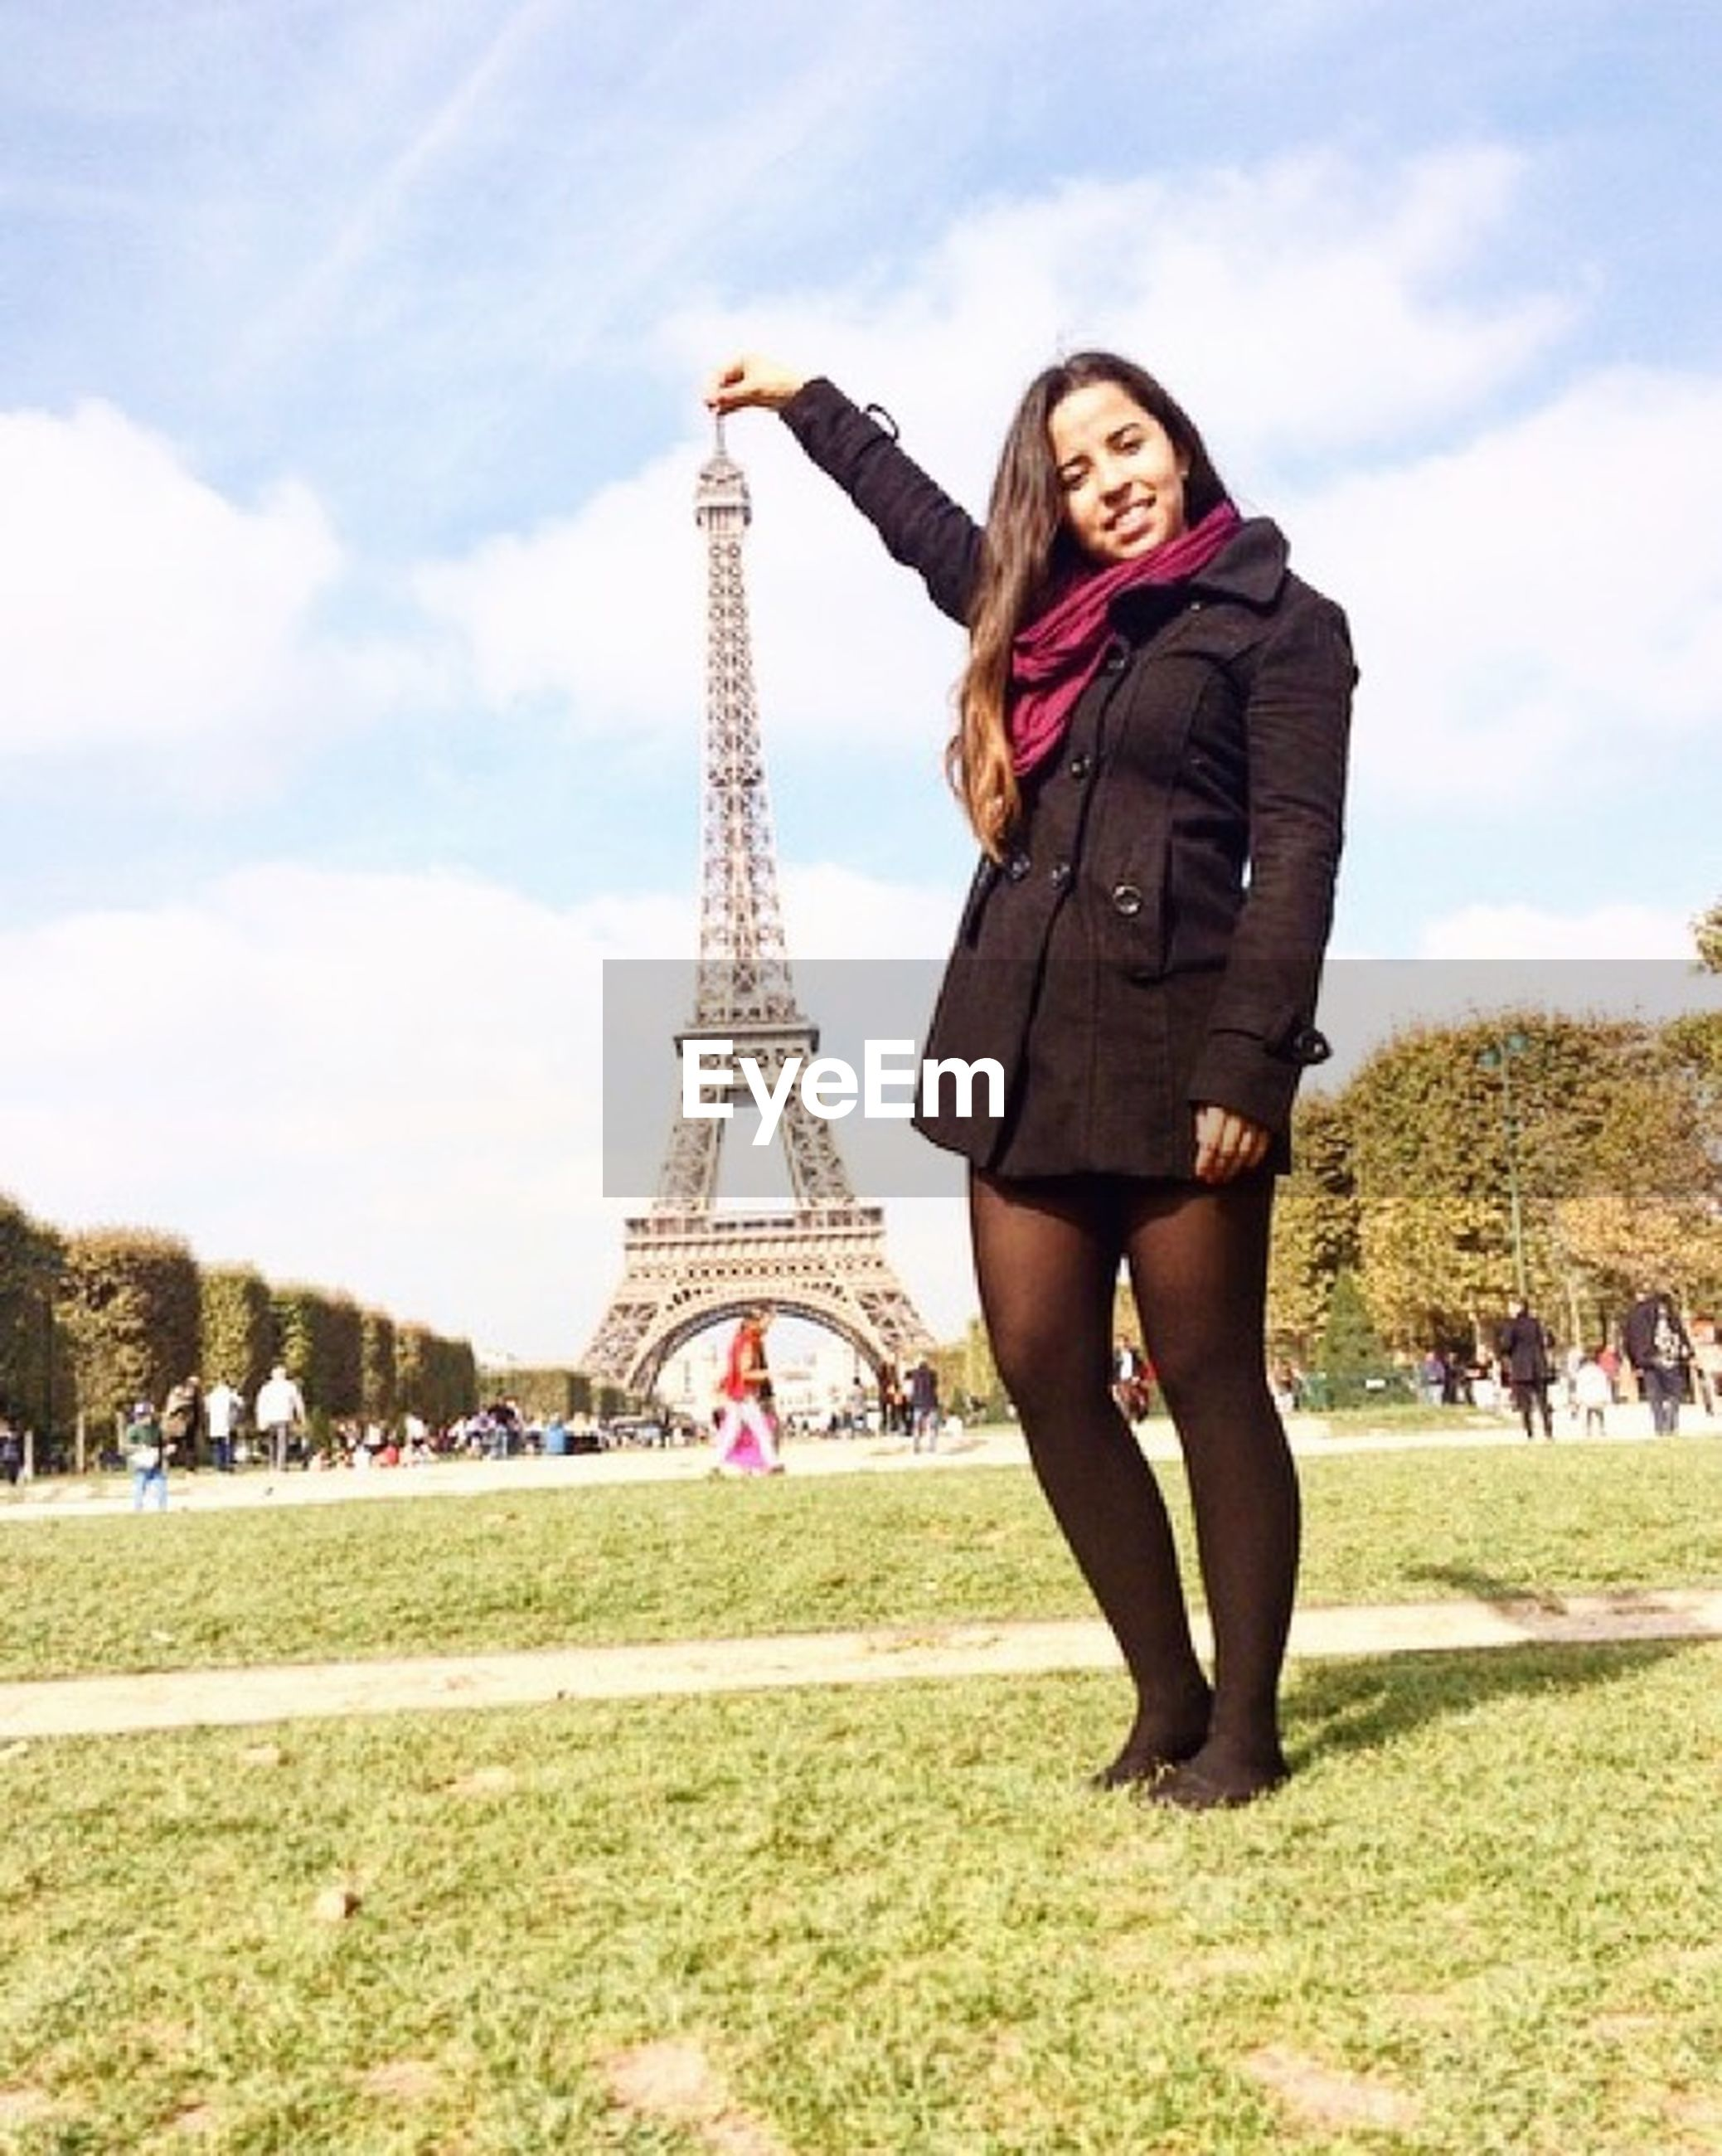 grass, lifestyles, leisure activity, casual clothing, sky, architecture, tree, built structure, tourism, famous place, full length, eiffel tower, travel destinations, standing, young adult, travel, park - man made space, tourist